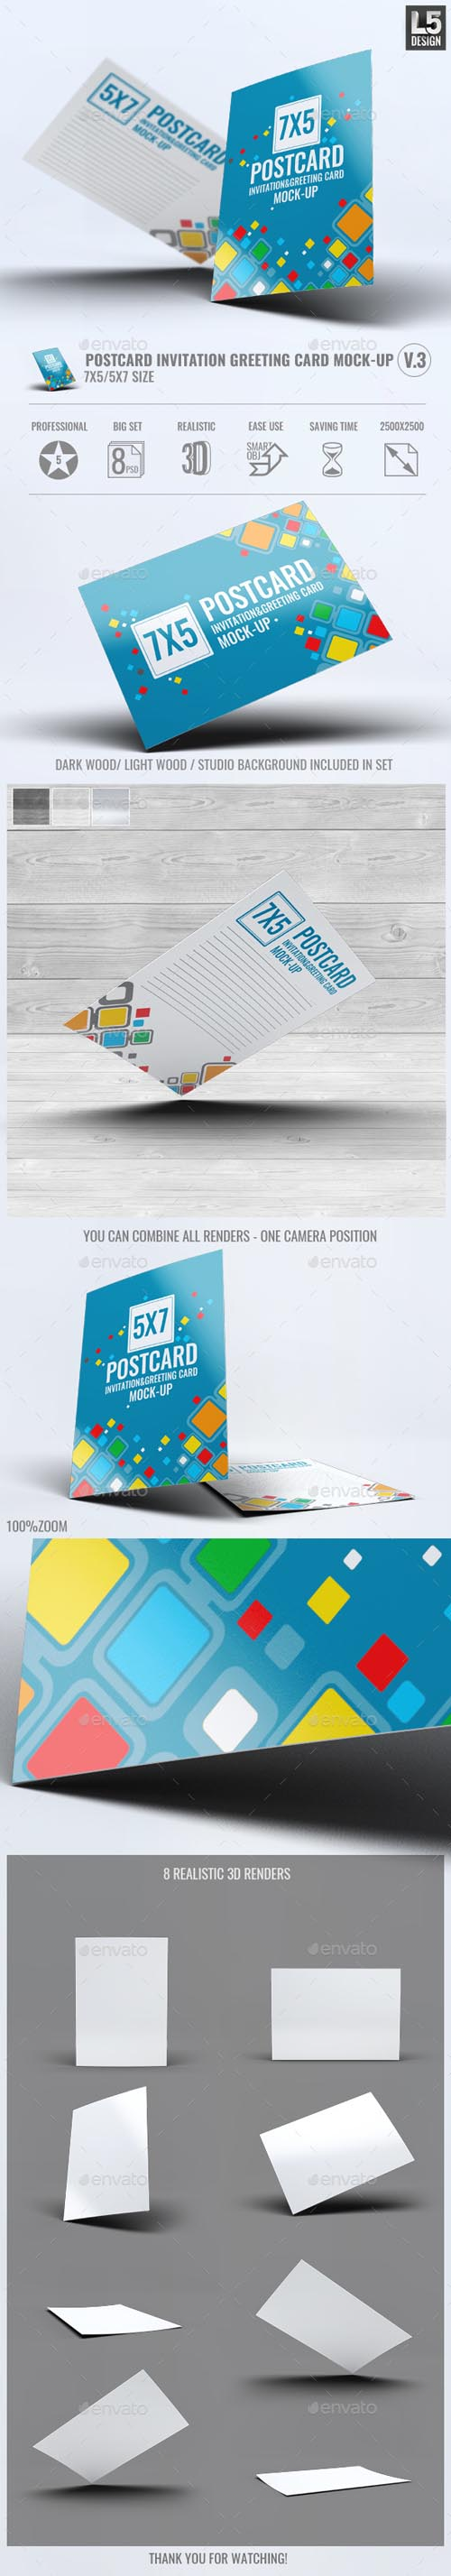 Postcard Invitation Greeting Card Mock-Up V.3 13399096